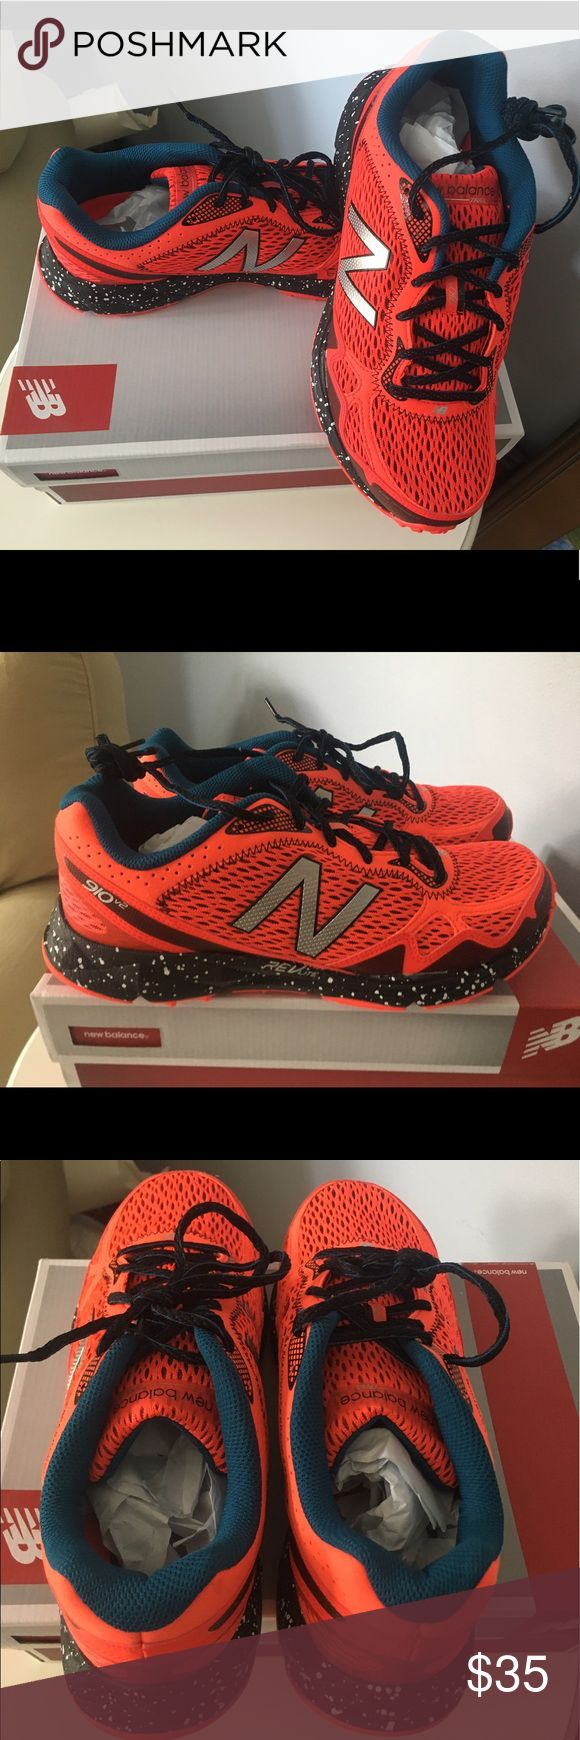 New Balance trail run sneakers New Balance men's trail running sneakers. Brand-new in box with tags and has never been worn! New Balance Shoes Sneakers